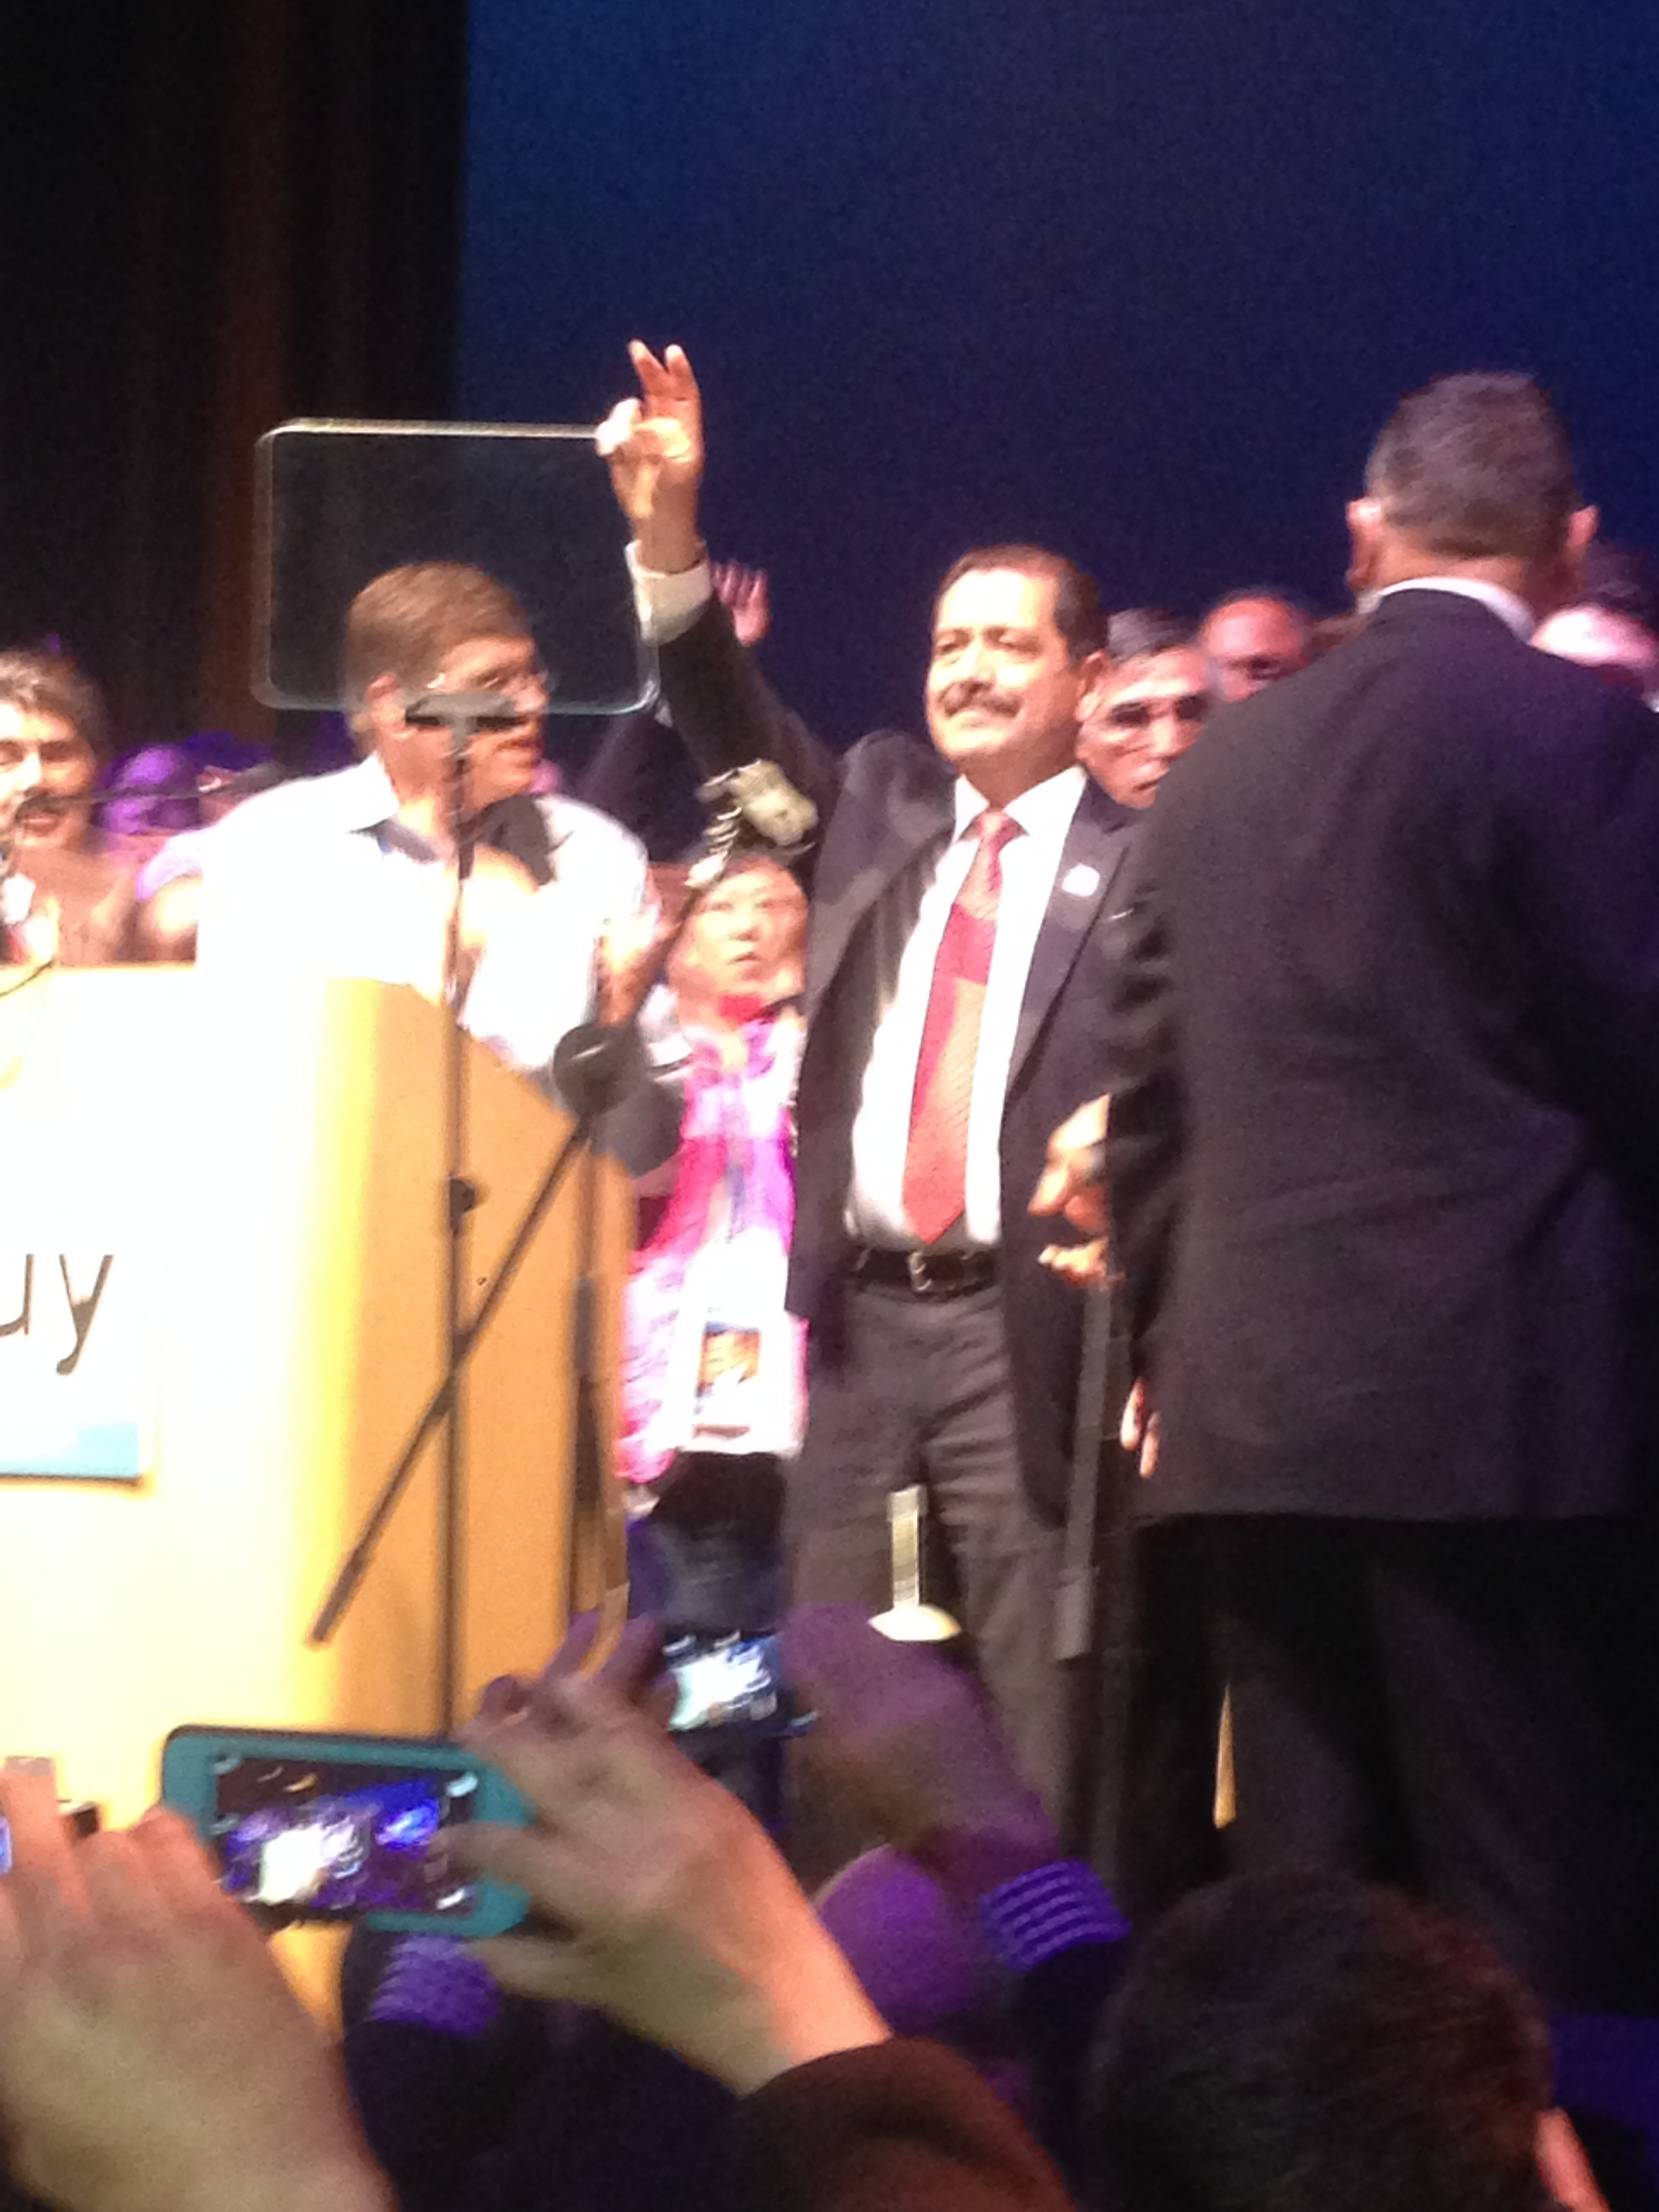 Garcia Loses to Emanuel; Calls on City to Care for Neighborhoods